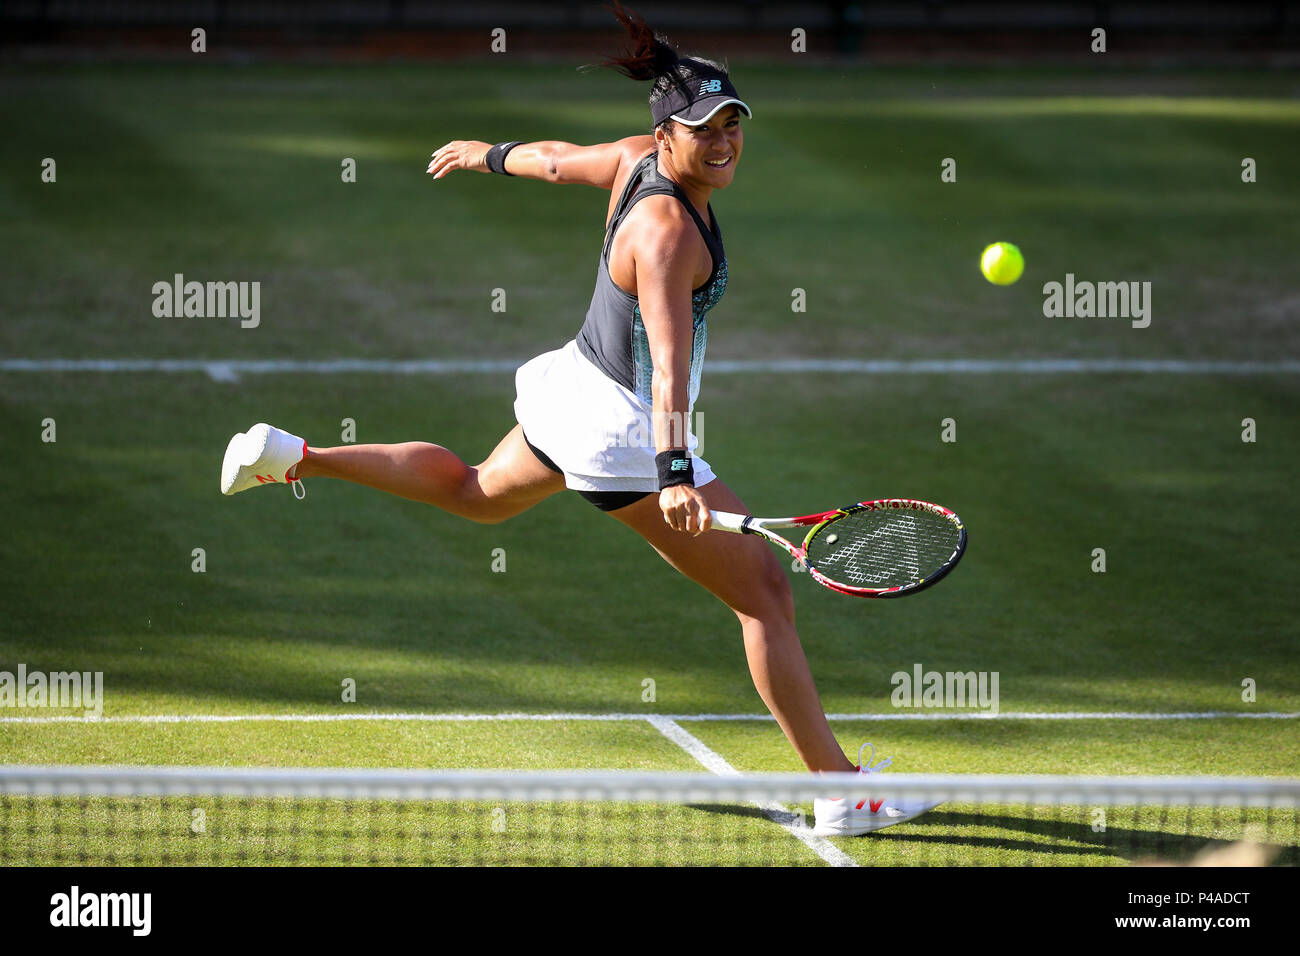 Edgbaston Priory Club, Birmingham, UK. 21st June, 2018. Nature Valley Classic Tennis; Heather Watson (GBR) hits a running backhand in the match against Barbora Krejcikova (CZE) and Katerina Siniakova (CZE) Credit: Action Plus Sports/Alamy Live News - Stock Image